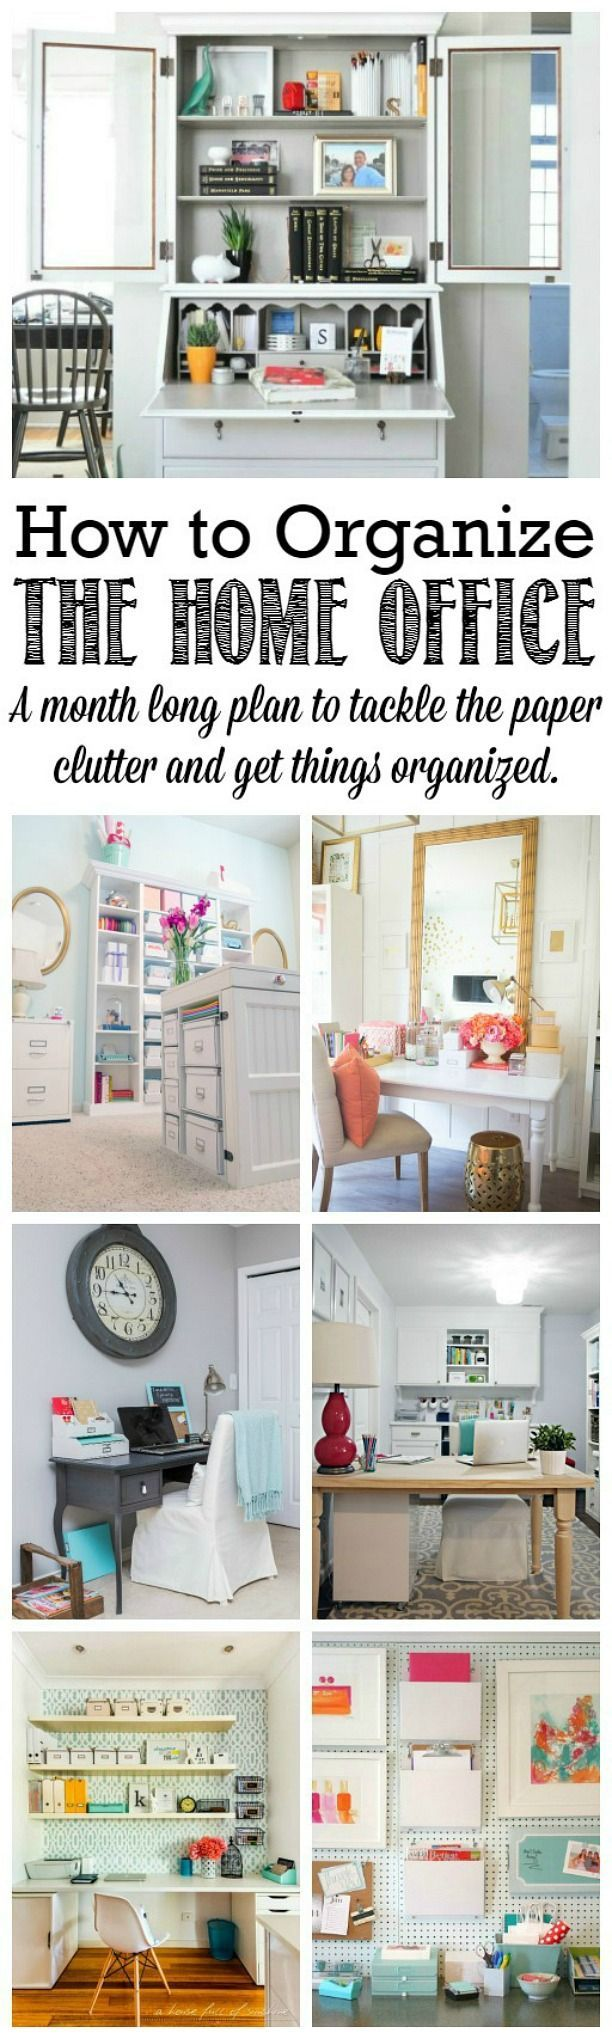 Organization ideas - Home Office. How to Organize the home office, month long plan.